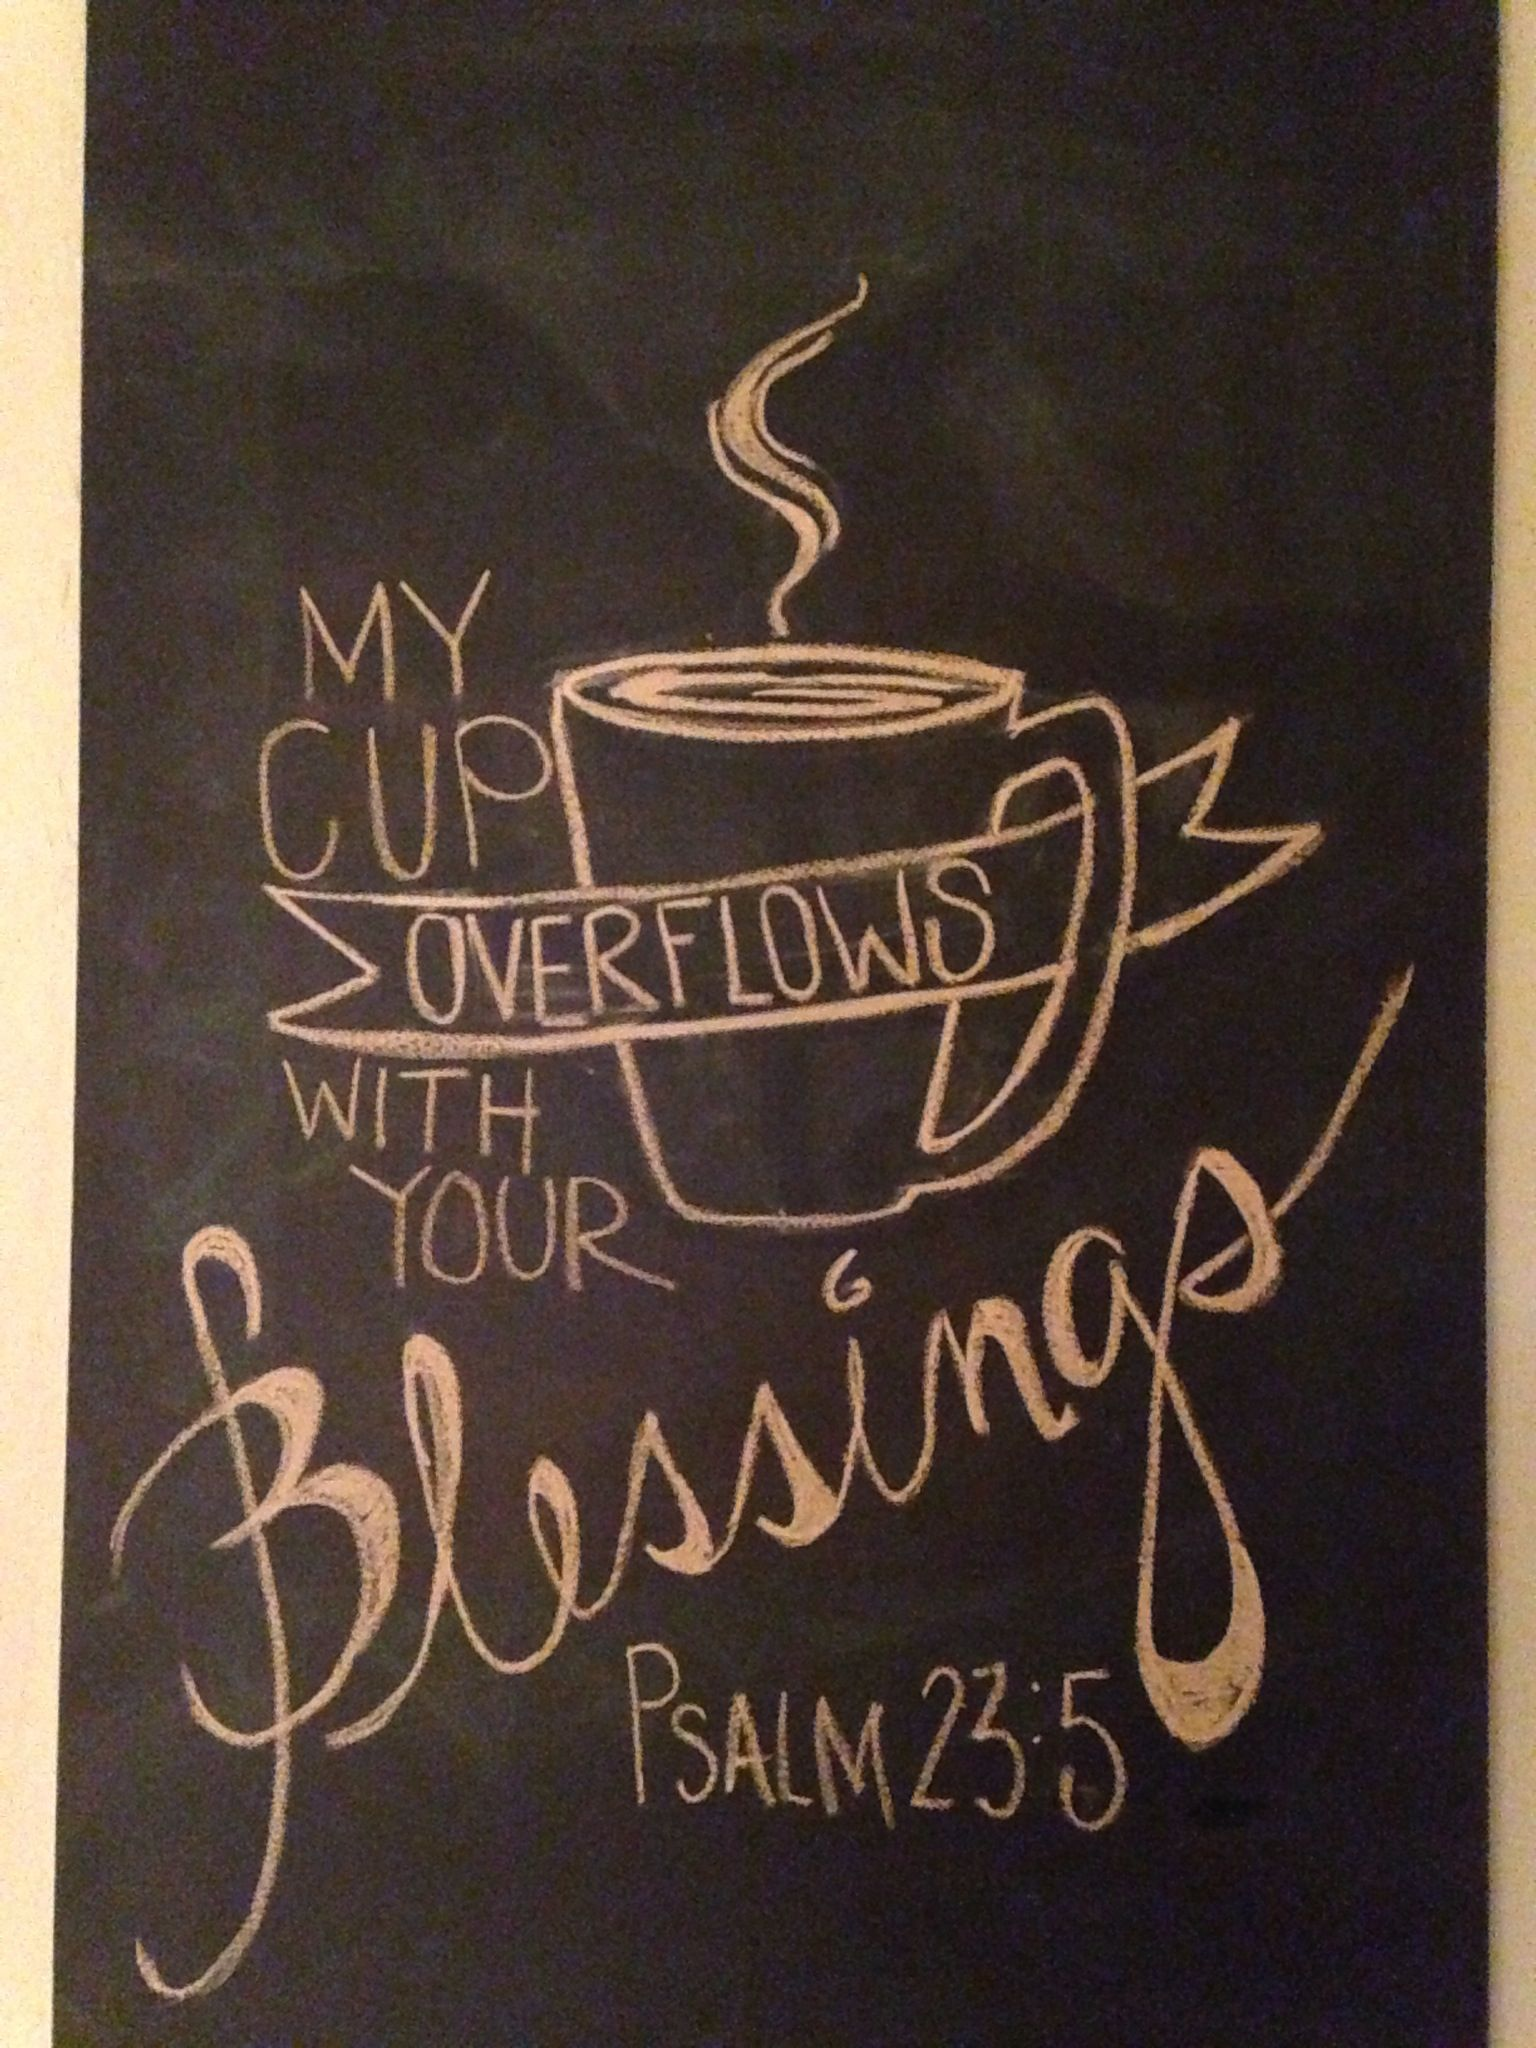 chalkboard art cup overflows with your blessings would love